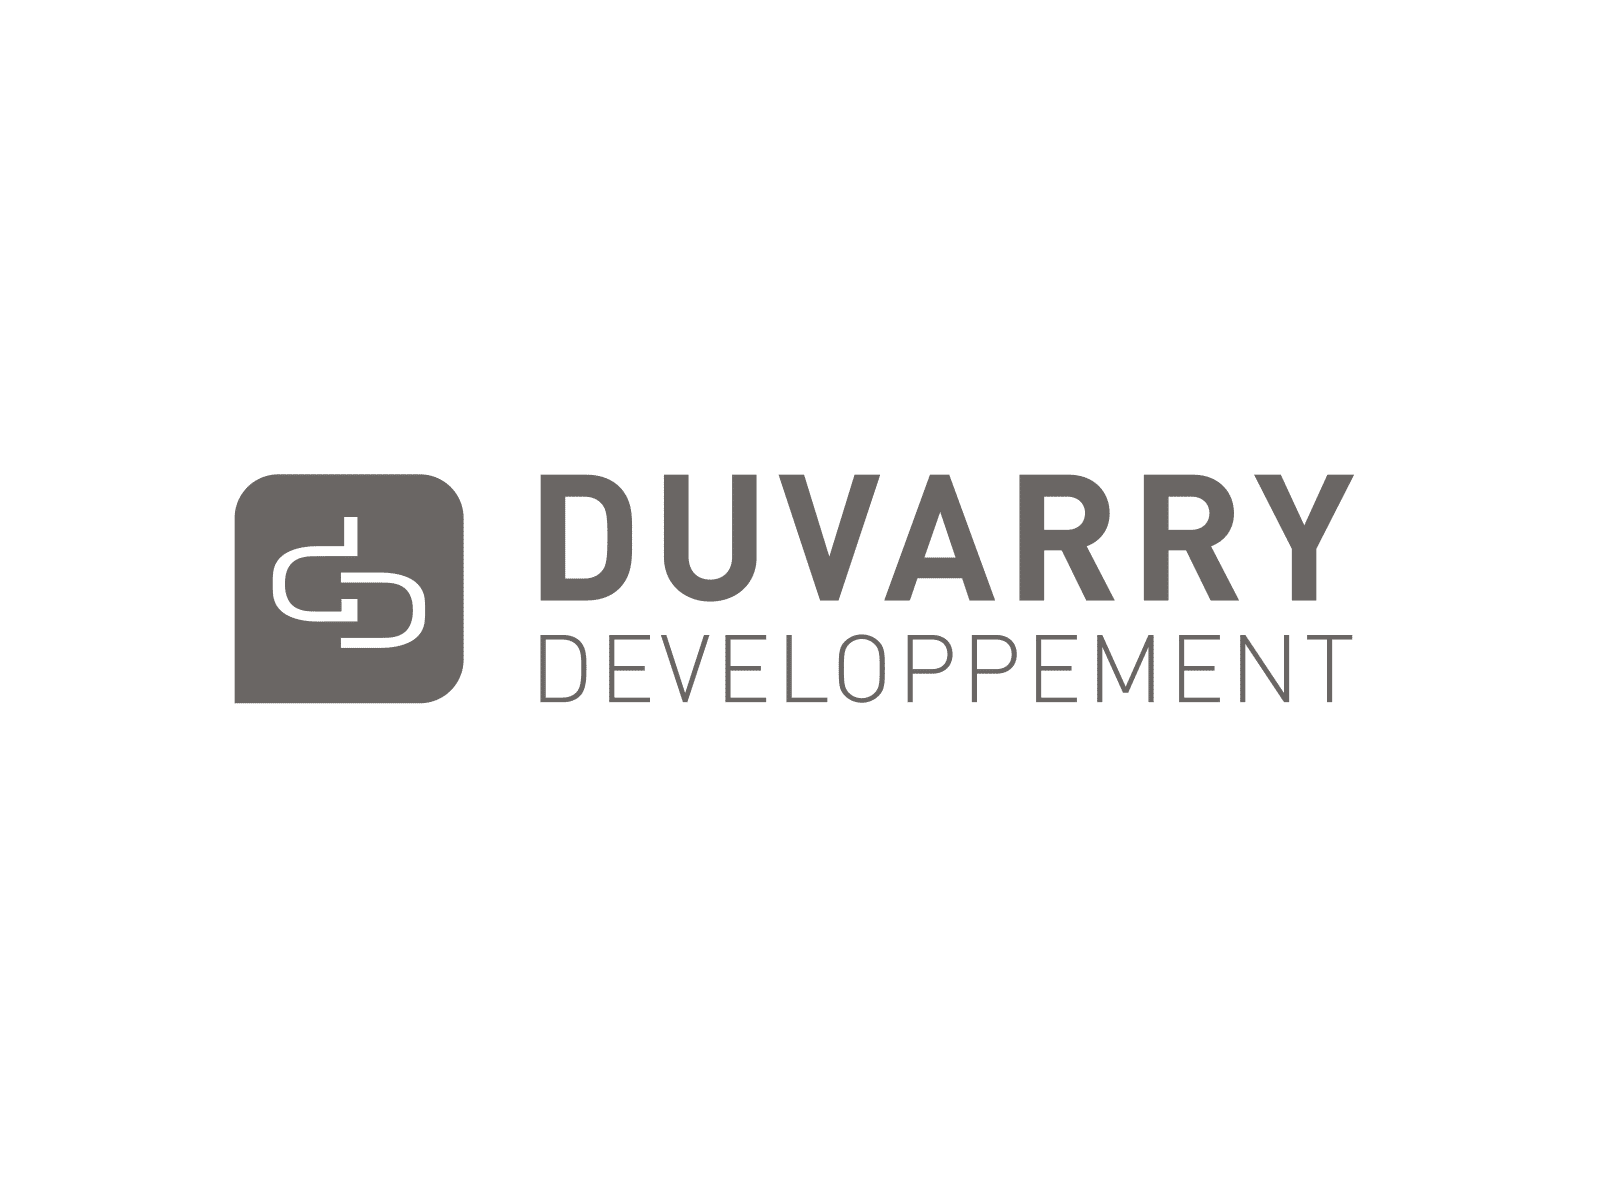 Logo DUVARRY DEVELOPPEMENT Holding Lyon - Client de STARFACTORY Communication